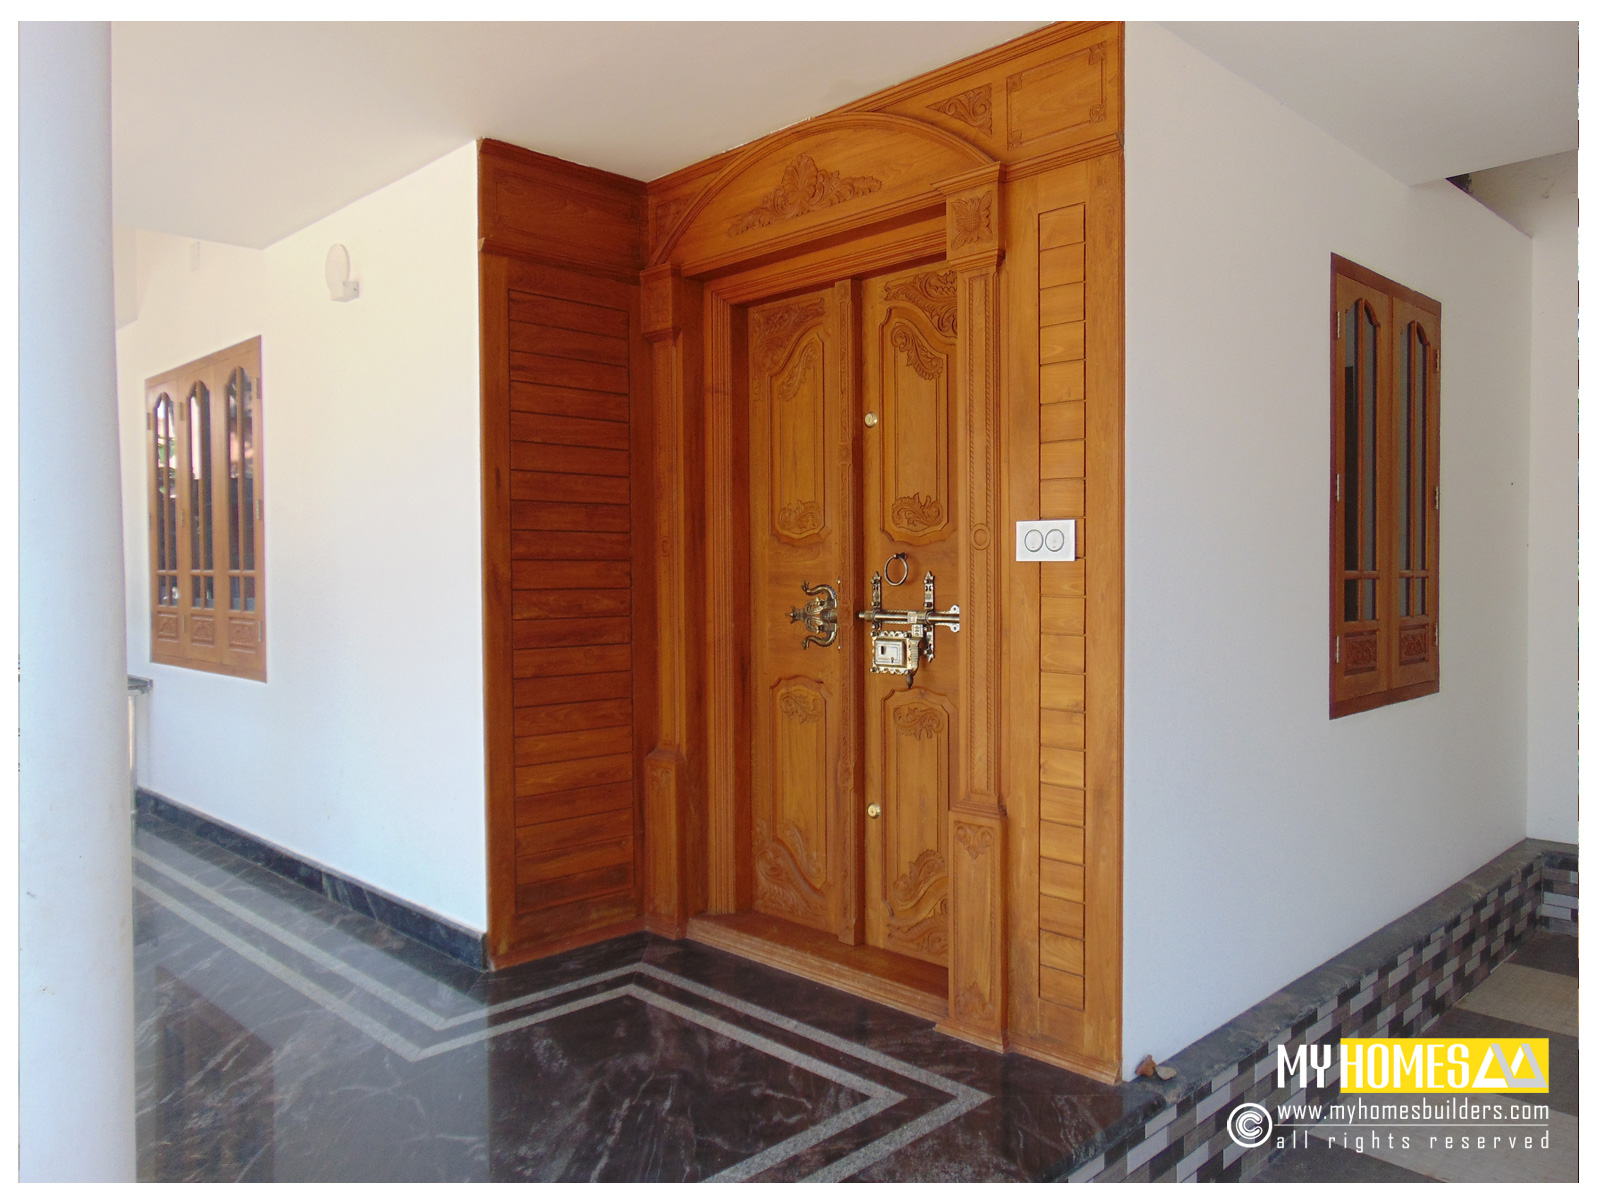 New idea for homes main door designs in kerala india for Indian main double door designs